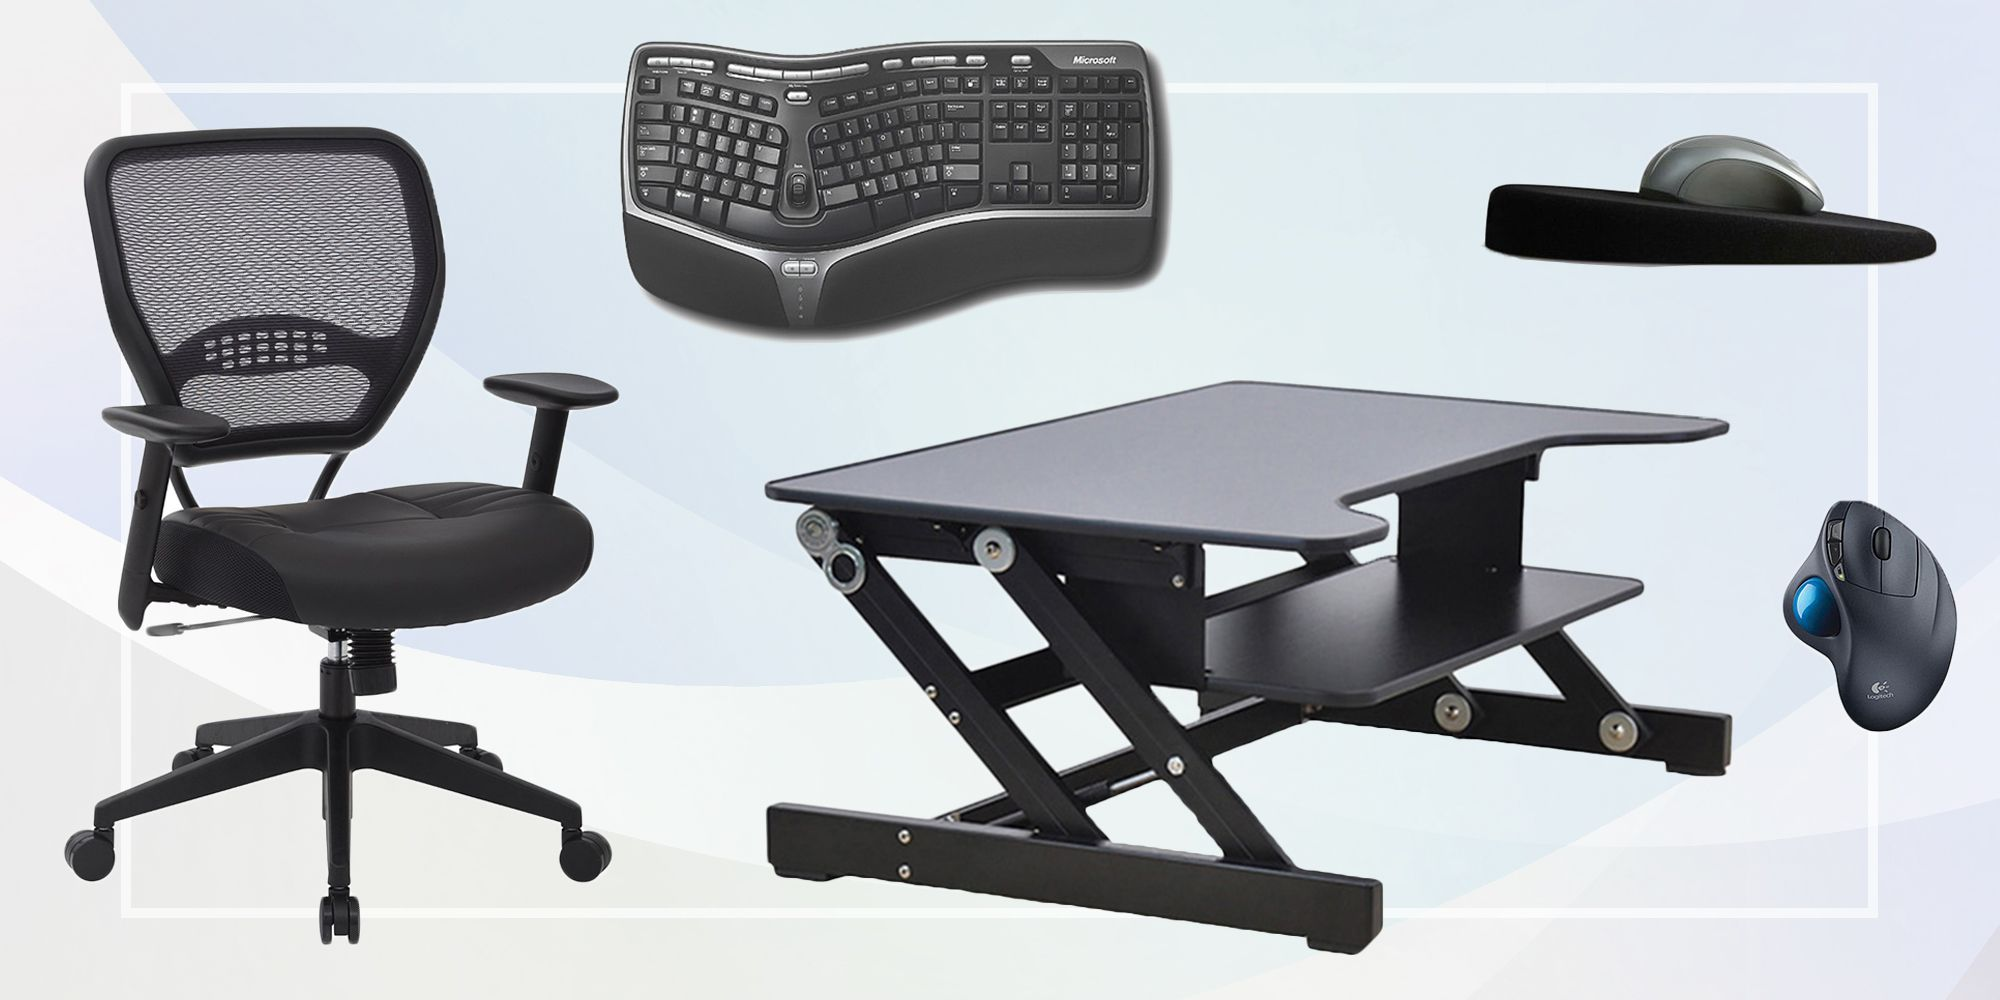 Amazing 25 Ergonomic Items To Bring Some Calm And Comfort Into Your Office